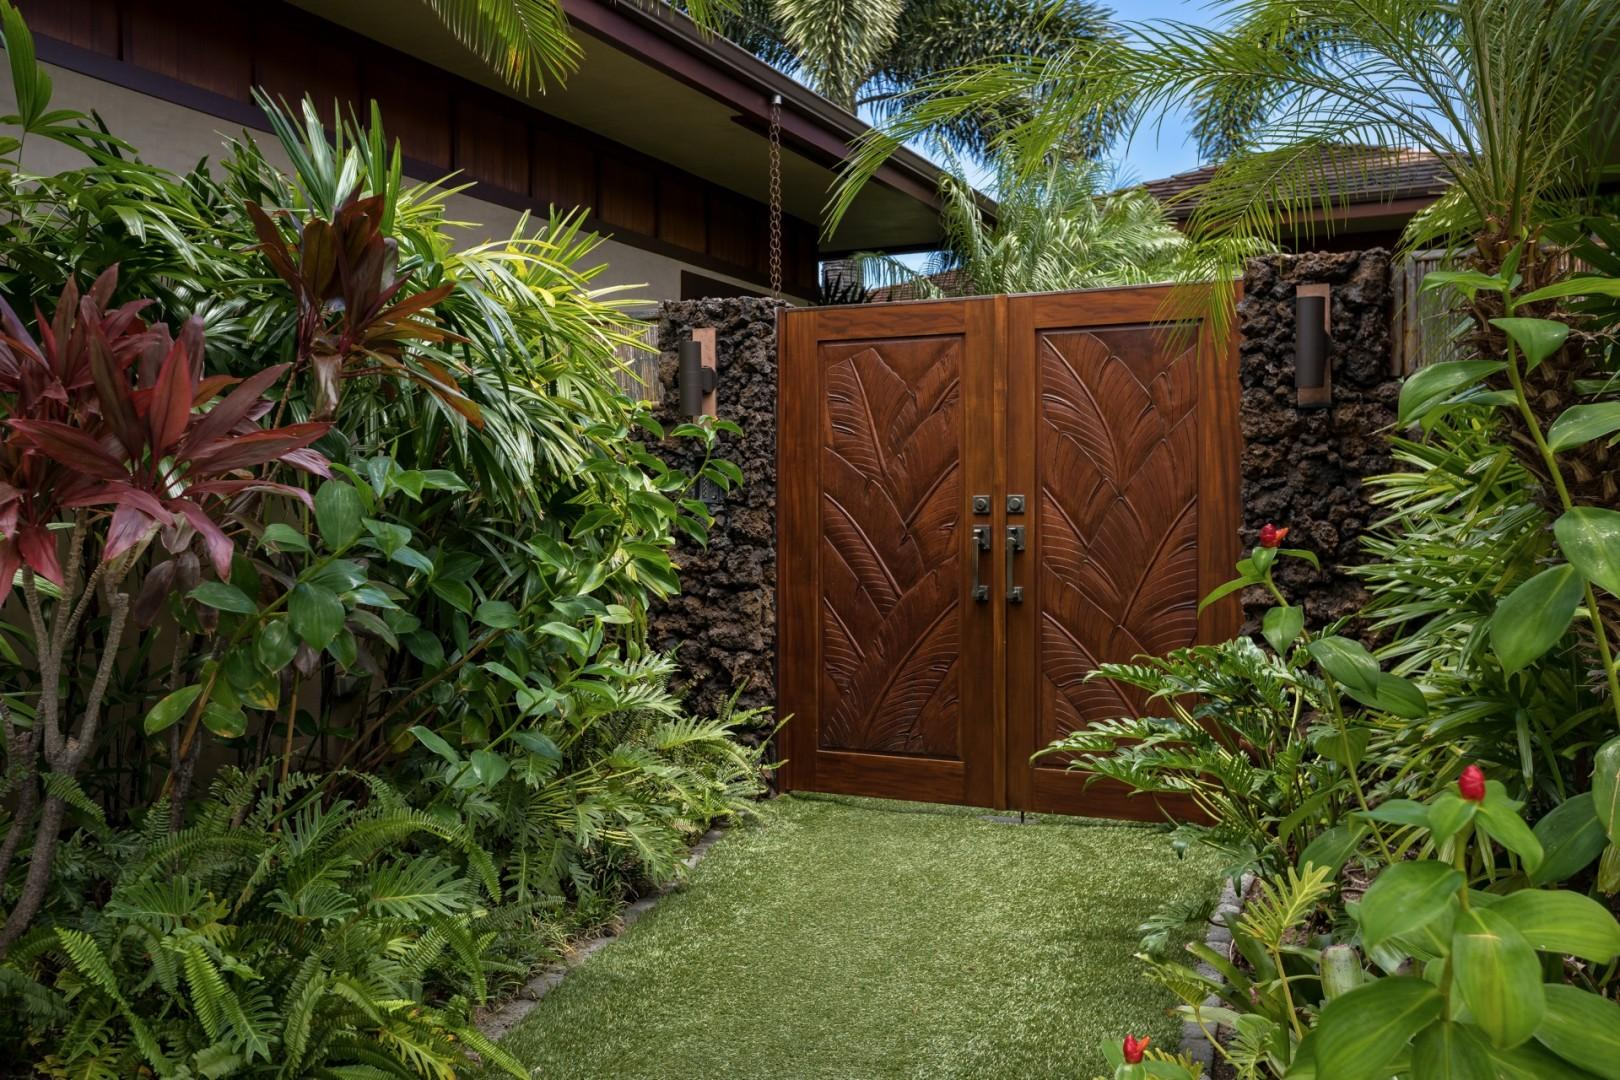 Carved mahogany doors from the motor court to the courtyard home entrance ensure plenty of privacy.